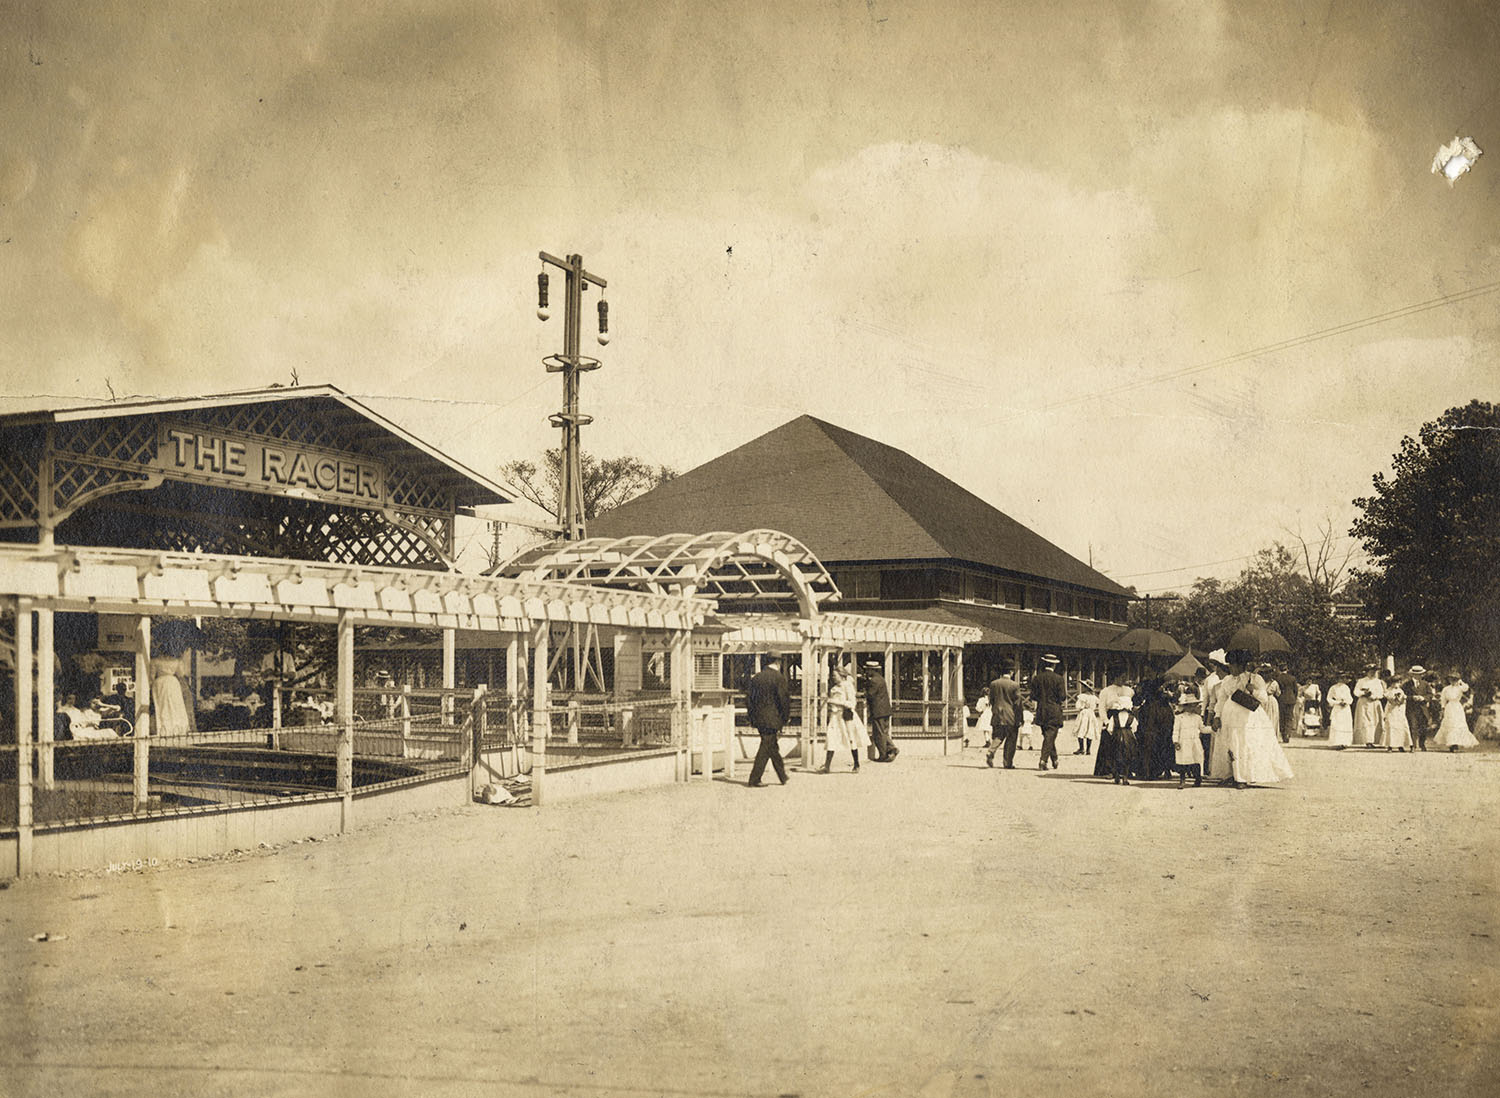 View of the entrance to the Racer, Kennywood Park, 1919.